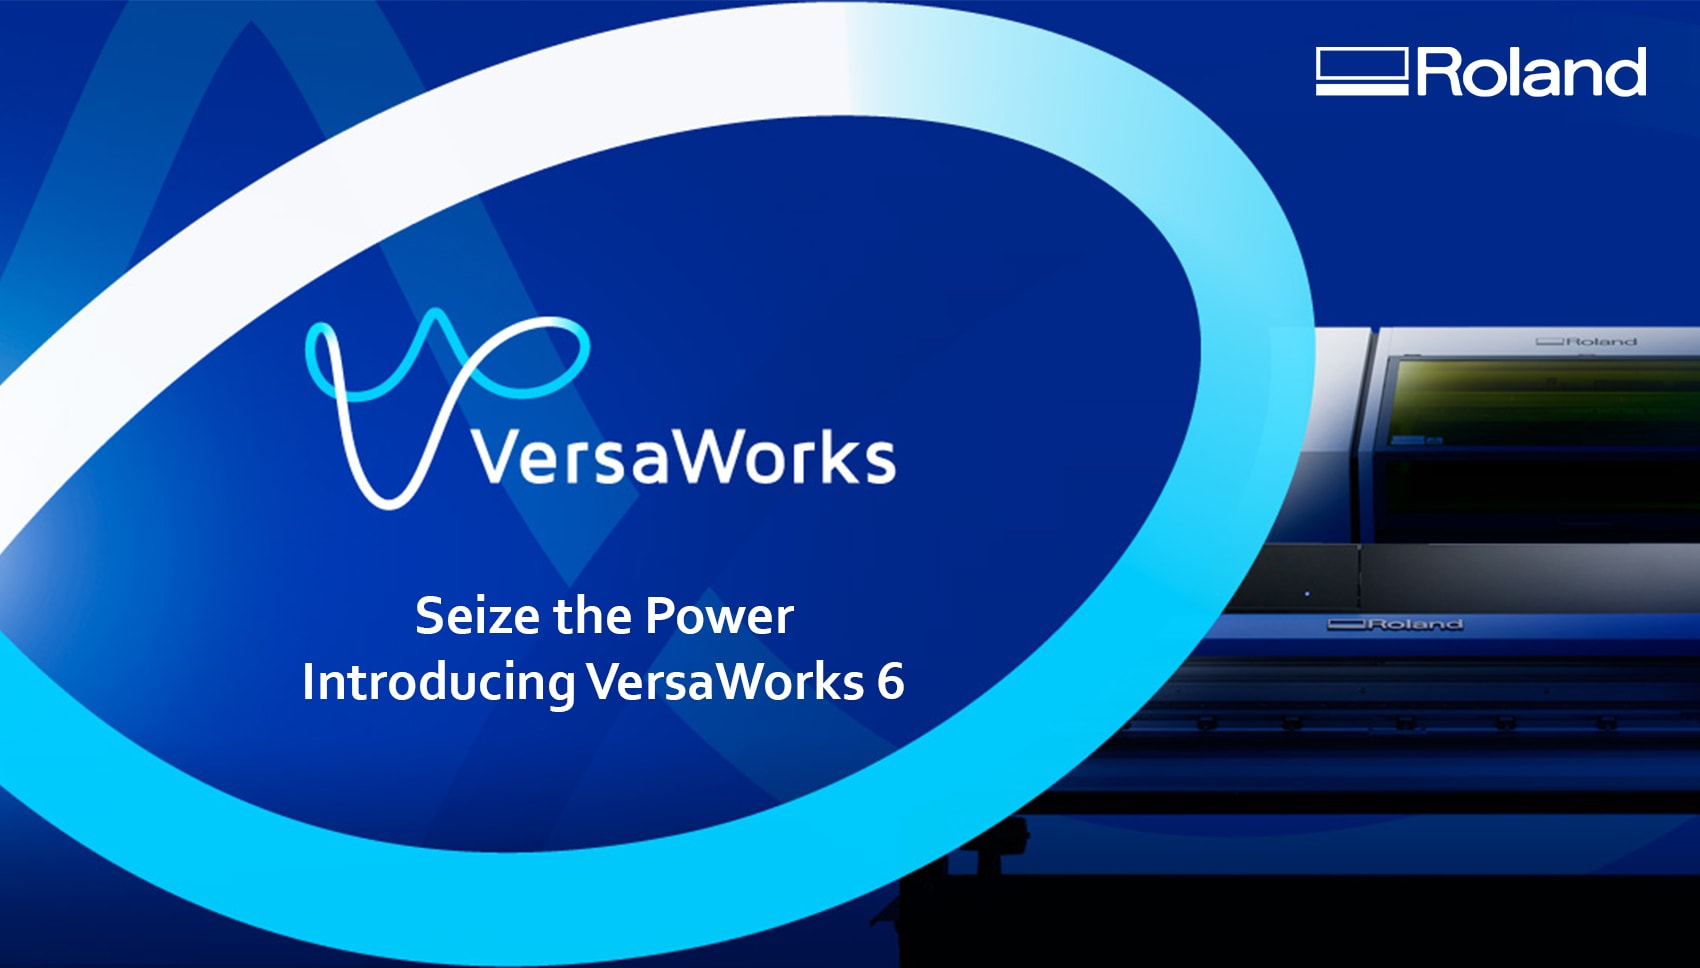 Enhanced efficiency and performance with new VersaWorks 6